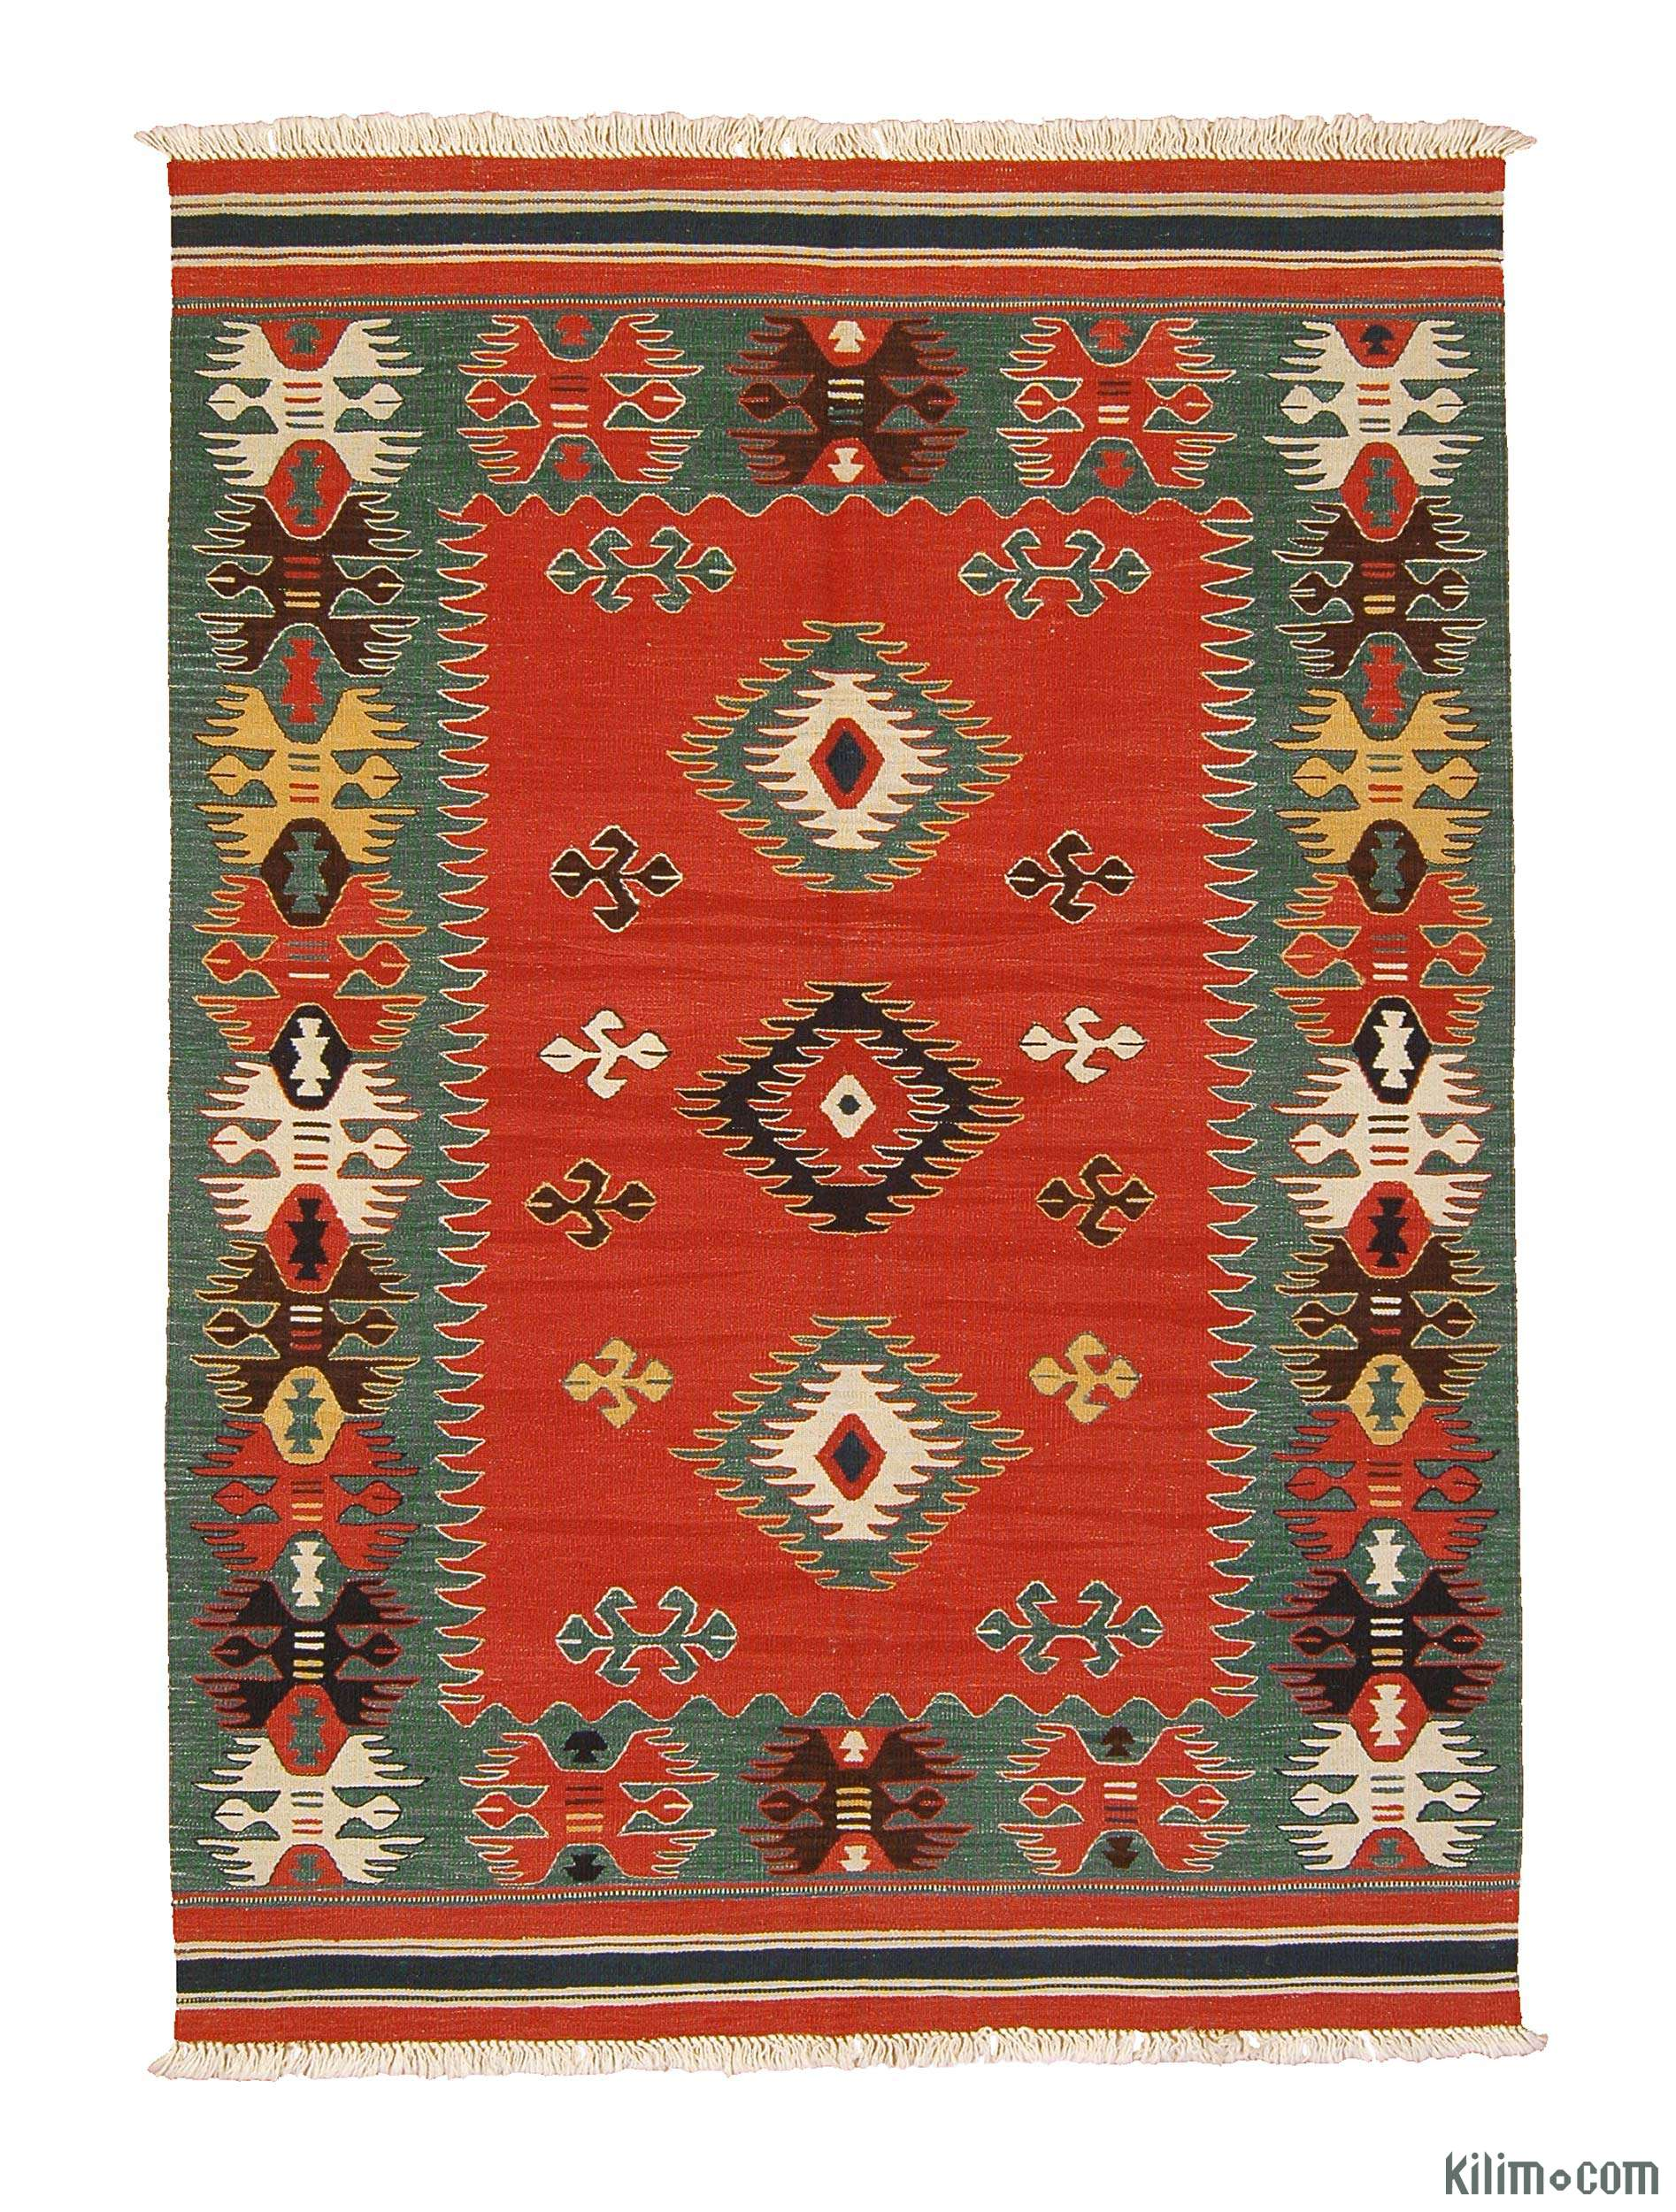 new kilim rugs kilim rugs overdyed vintage rugs hand made turkish rugs patchwork carpets by. Black Bedroom Furniture Sets. Home Design Ideas